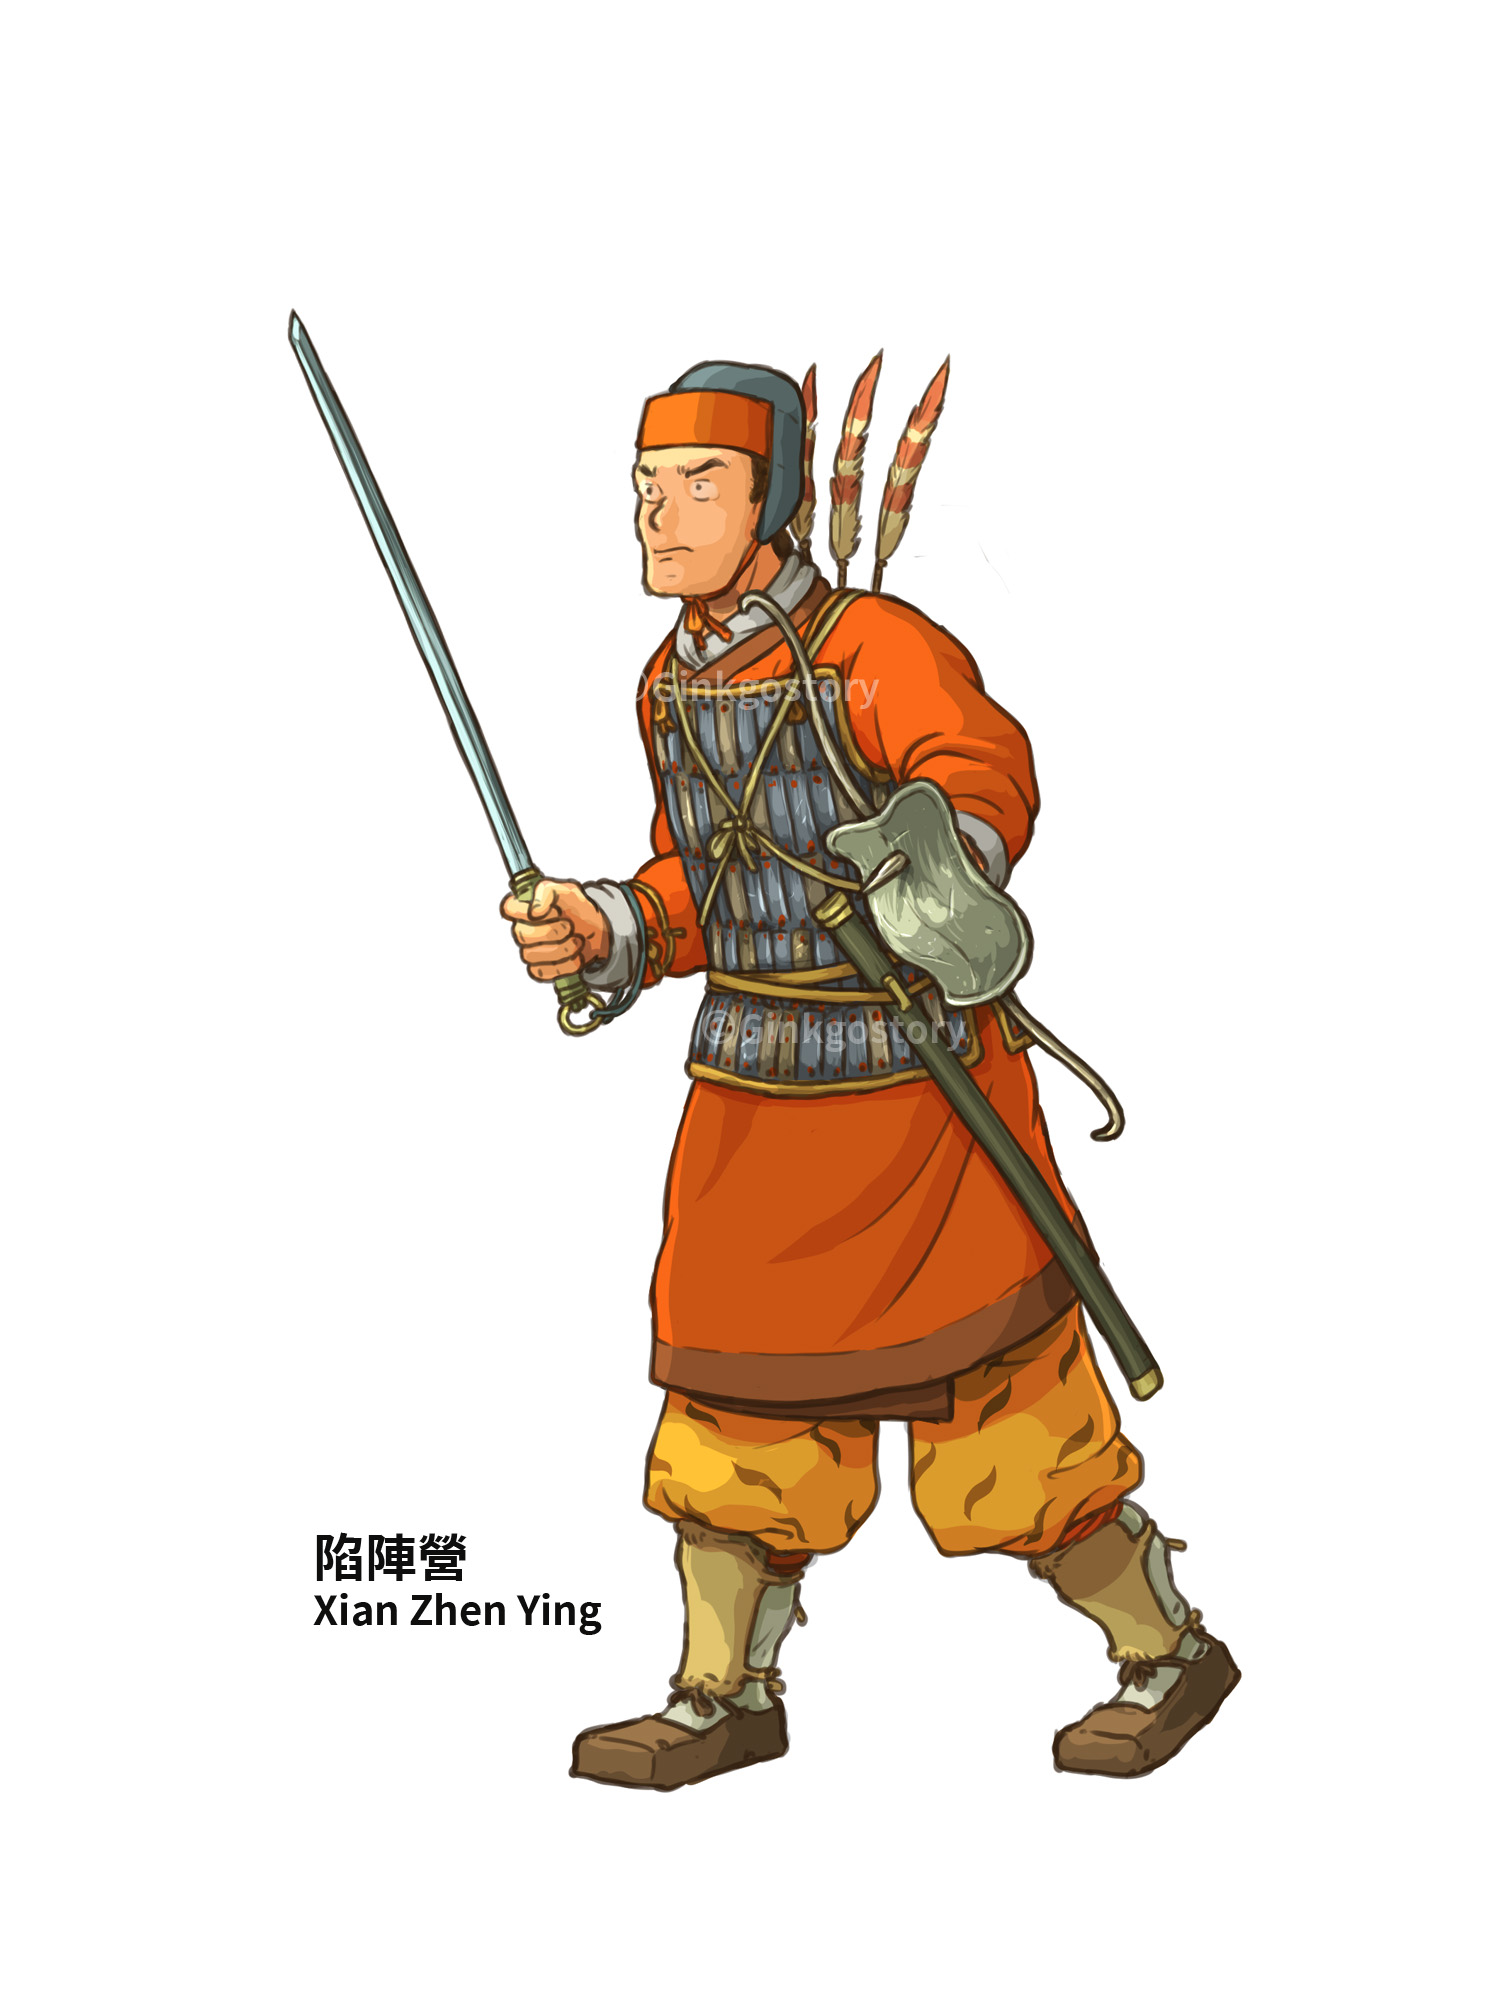 Three Kingdoms: Xian Zhen Ying